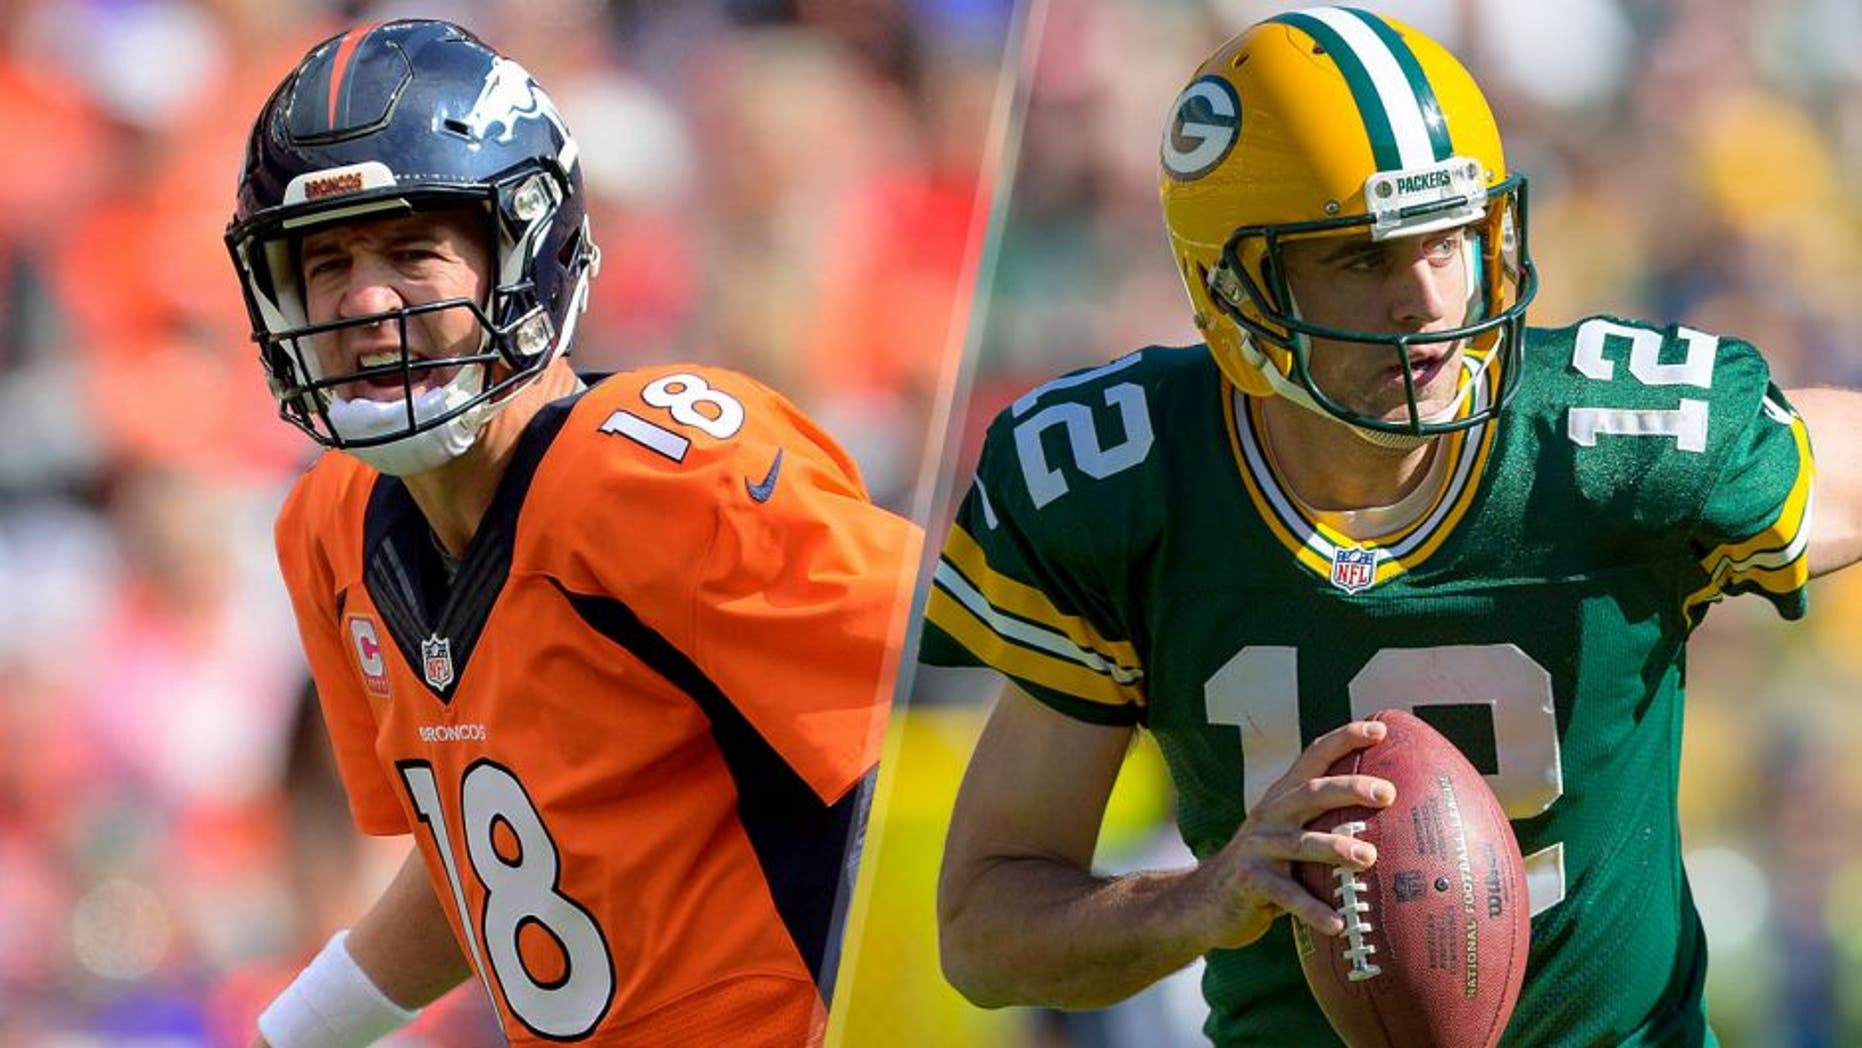 Oct 4, 2015; Denver, CO, USA; Denver Broncos quarterback Peyton Manning (18) calls out in the first quarter against the Minnesota Vikings at Sports Authority Field at Mile High. Mandatory Credit: Ron Chenoy-USA TODAY Sports Oct 11, 2015; Green Bay, WI, USA; Green Bay Packers quarterback Aaron Rodgers (12) during the game against the St. Louis Rams at Lambeau Field. Green Bay won 24-10. Mandatory Credit: Jeff Hanisch-USA TODAY Sports